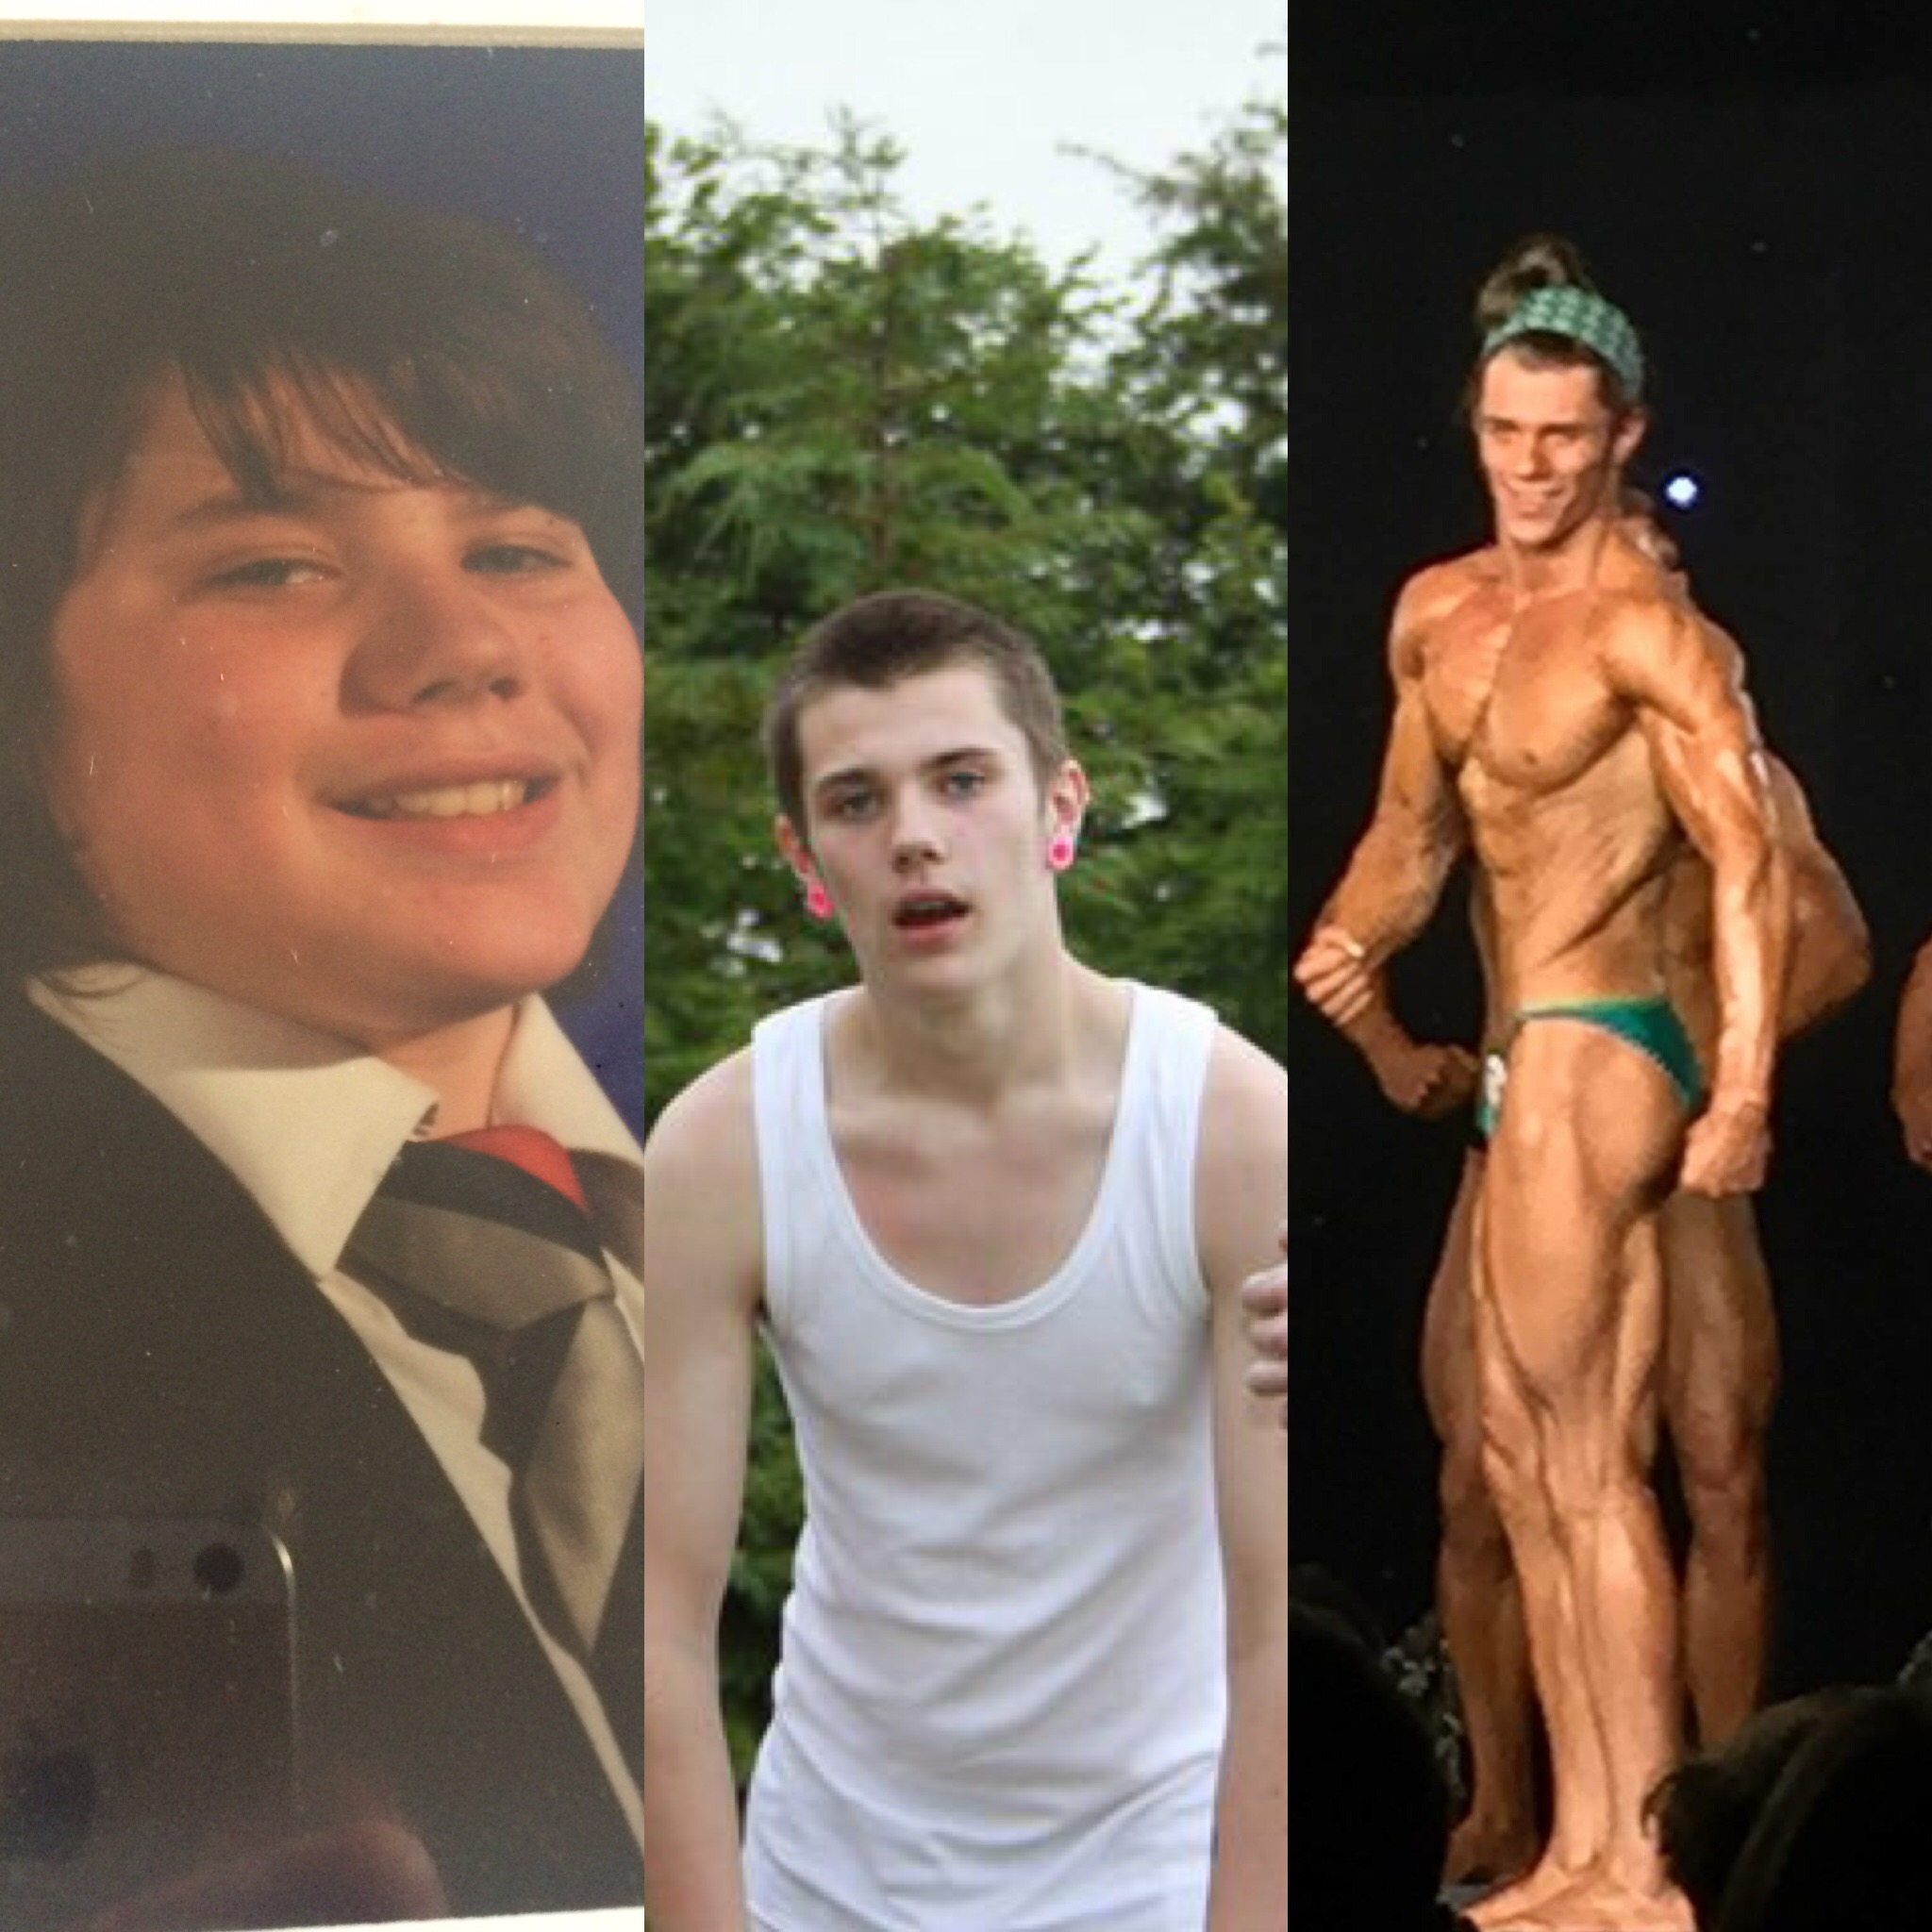 Donnacha journey from 15years old on the left to 20 on the right